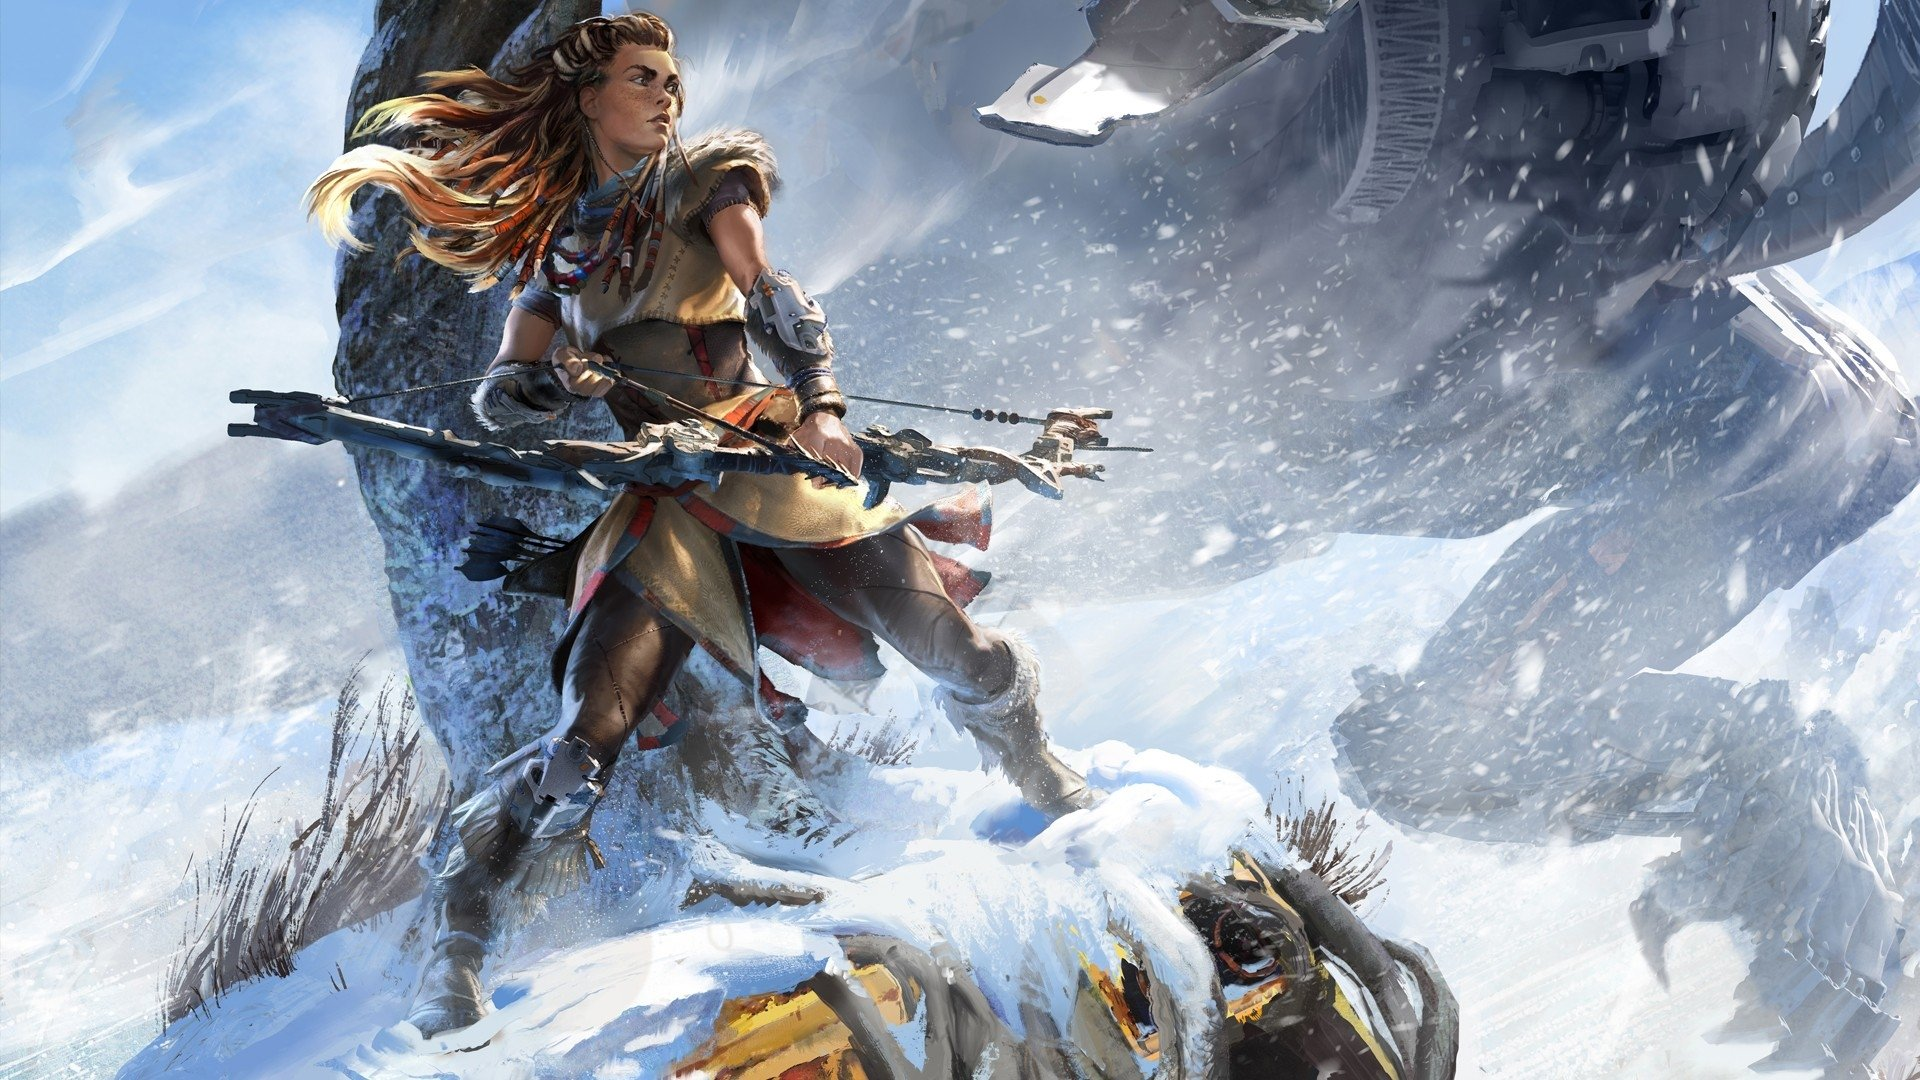 131 Aloy Horizon Zero Dawn Hd Wallpapers Background Images